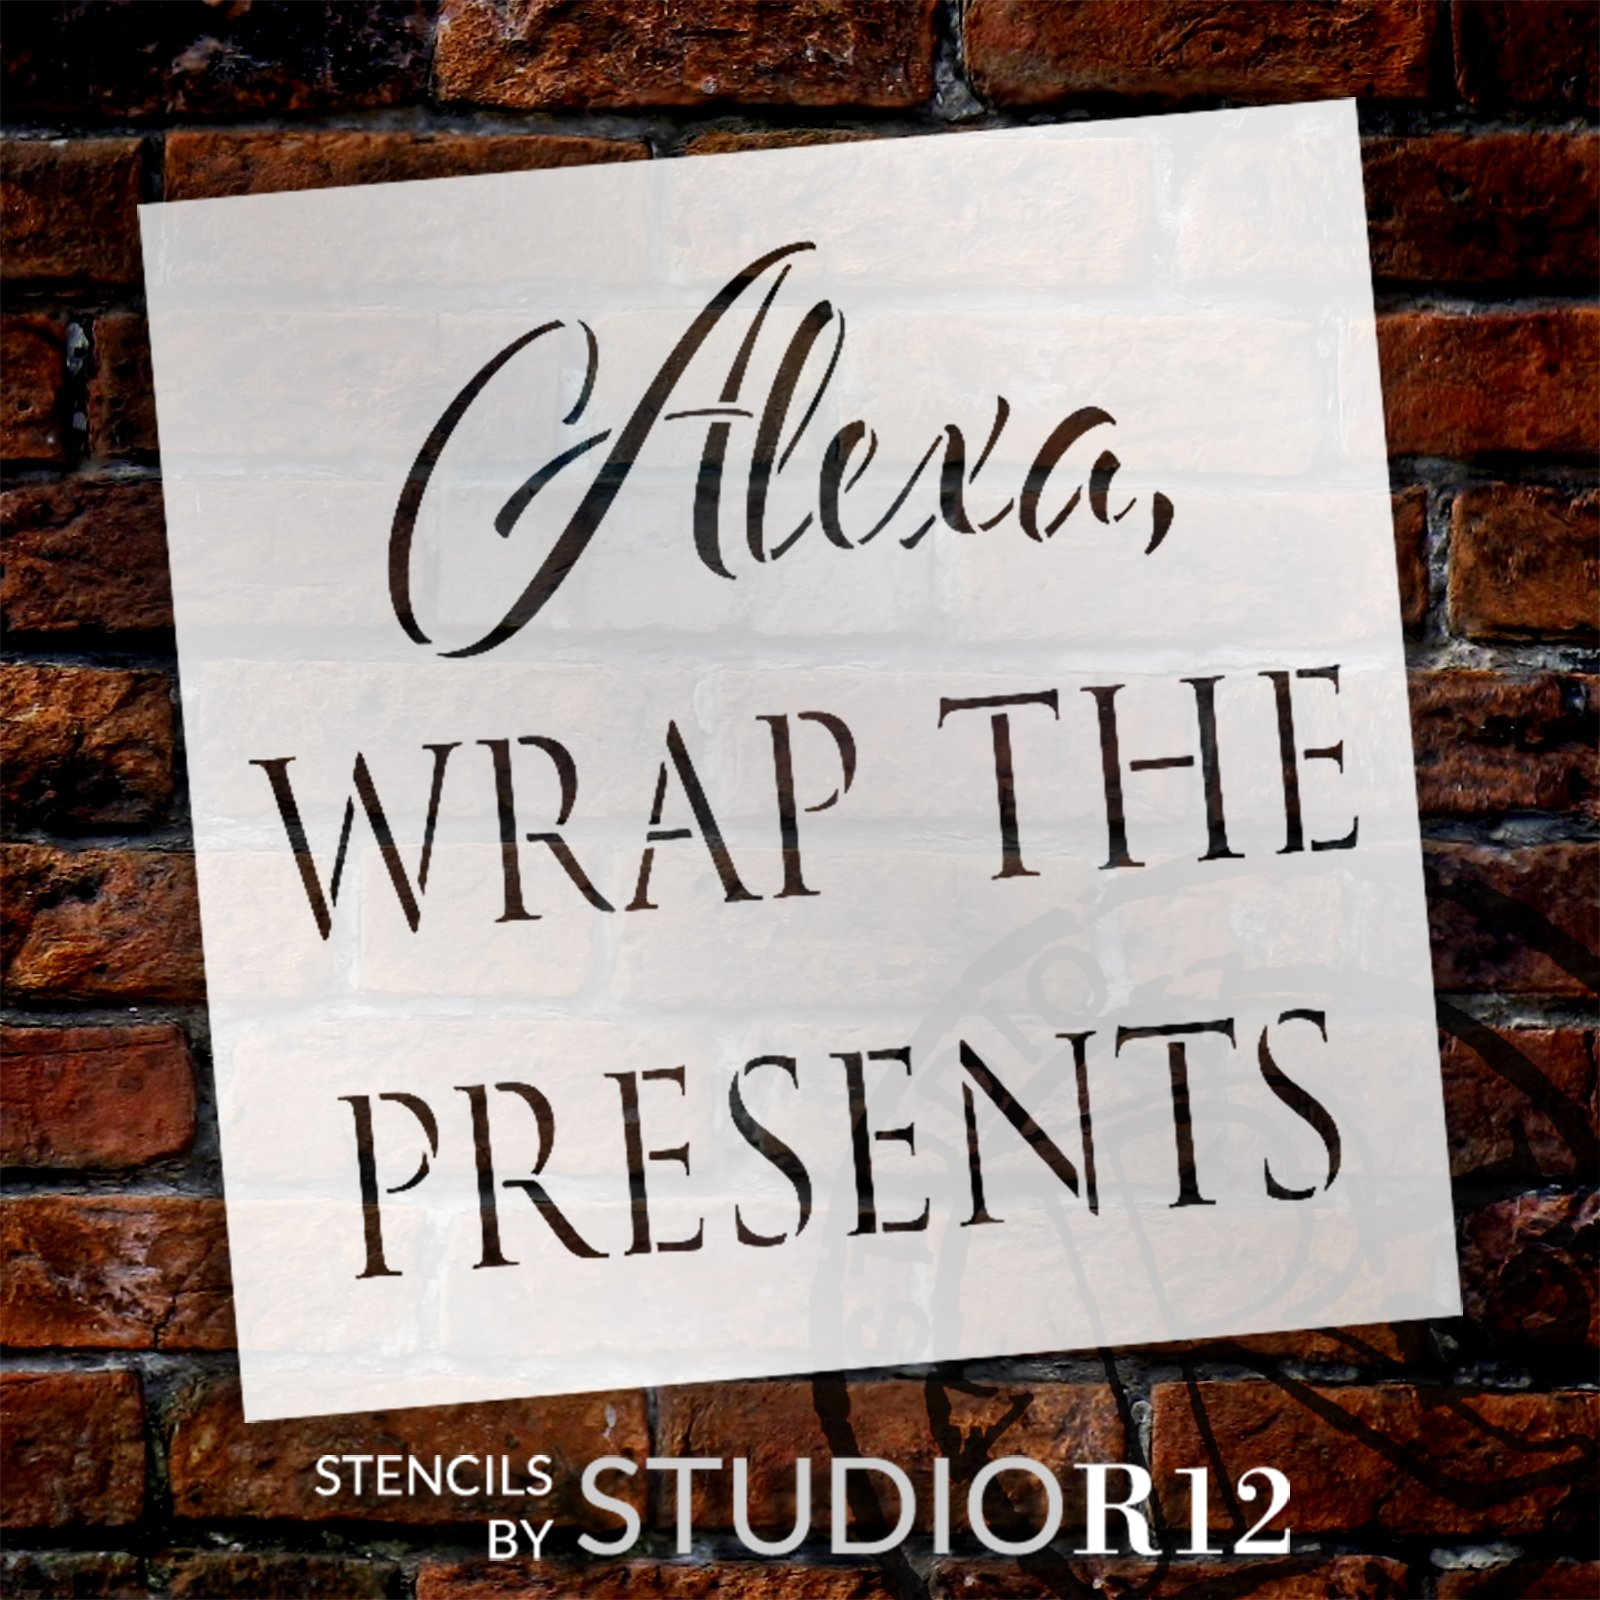 Alexa Wrap The Presents Stencil by StudioR12 | Craft DIY Funny Christmas Holiday Home Decor | Paint Wood Sign | Reusable Mylar Template | Select Size